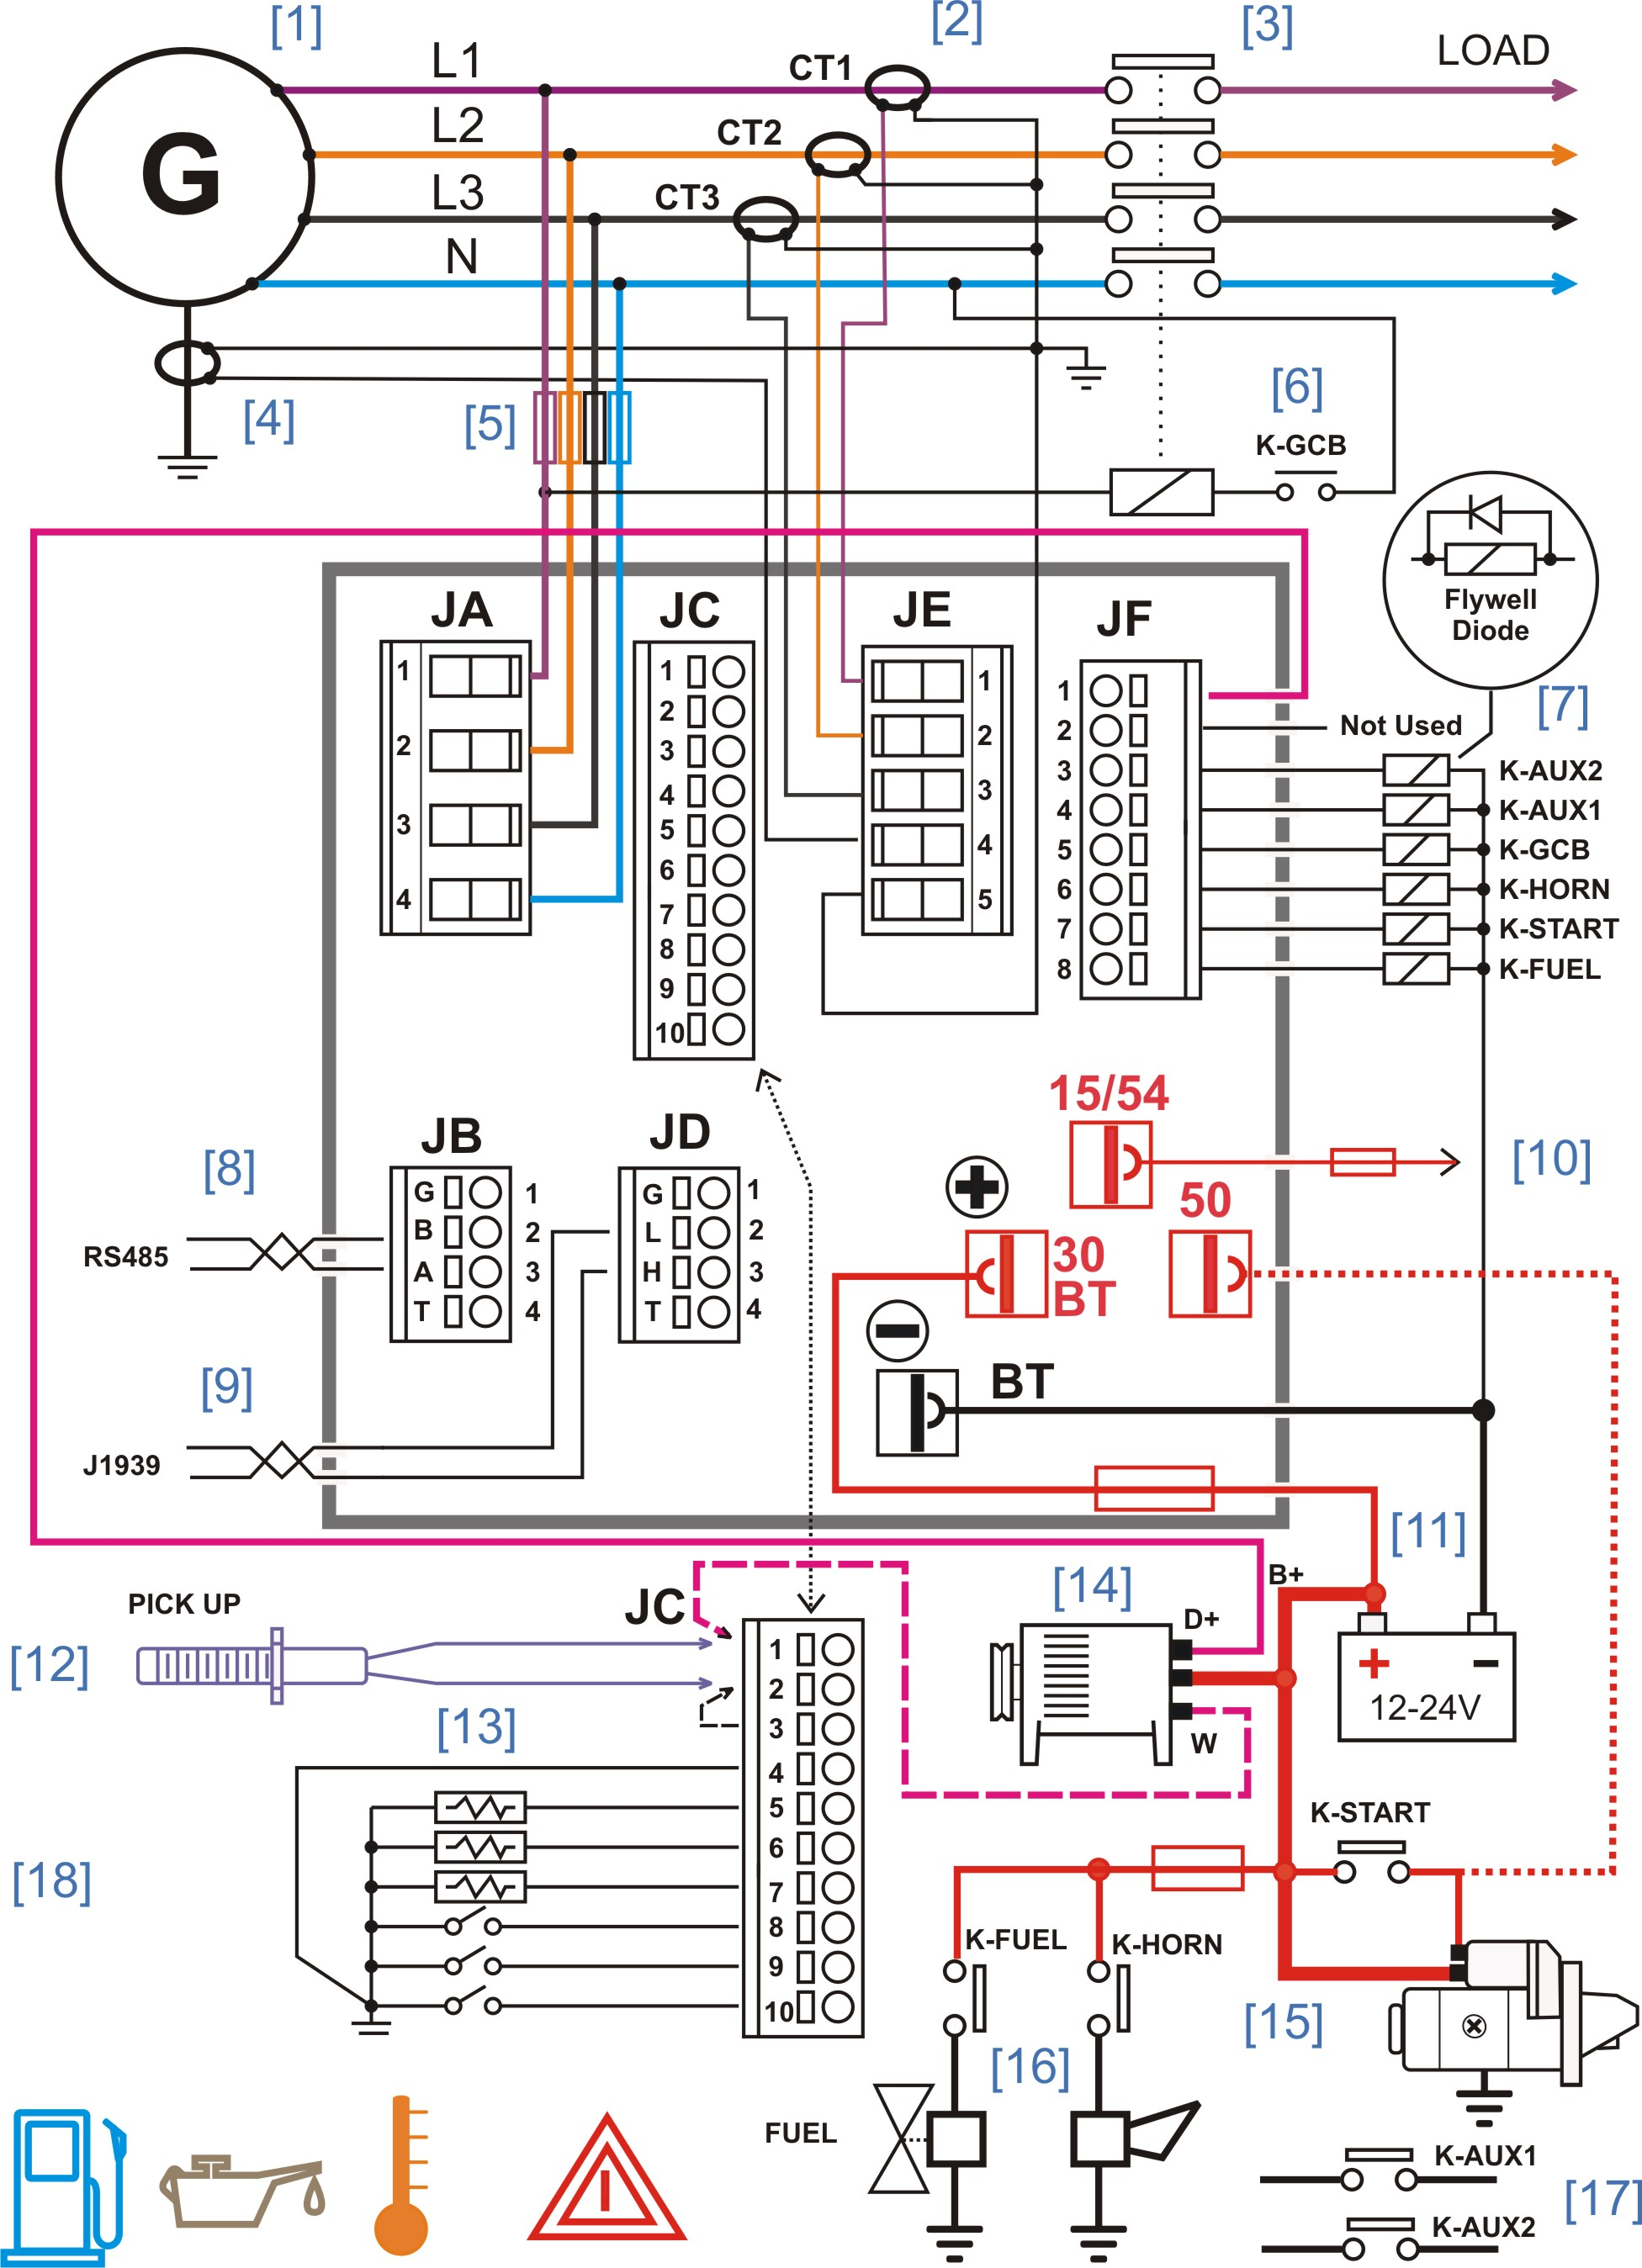 Generator Controller Wiring Diagram generator controller wiring diagram genset controller  at eliteediting.co